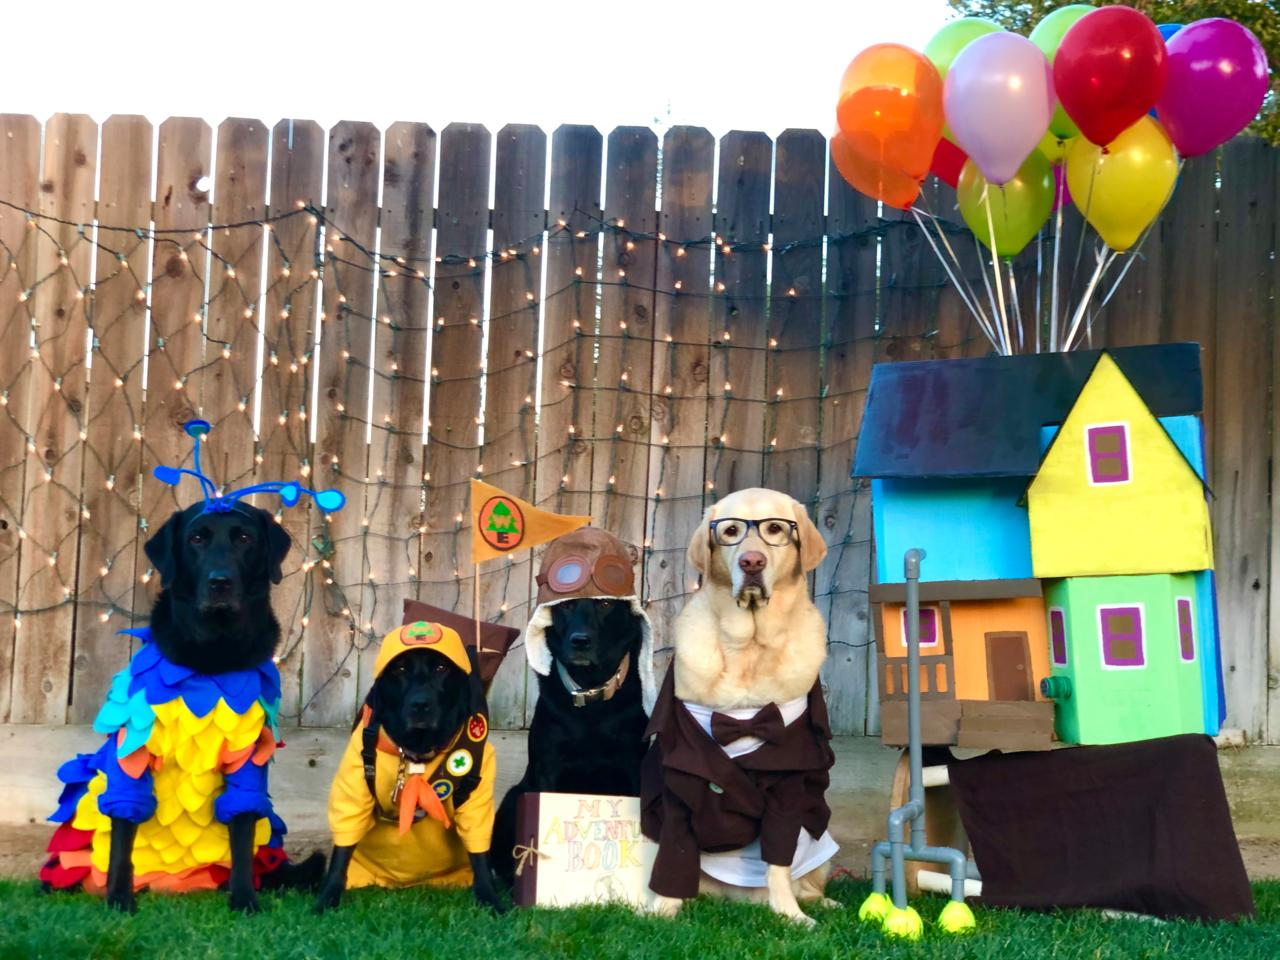 Honorary mention to Kevin (Shep), Russell (Waffle), Ellie (Filly), and Mr. Fredricksen (Schroeder) for their great job posing as characters from Pixar's Up. Photo submission by Meghan L.